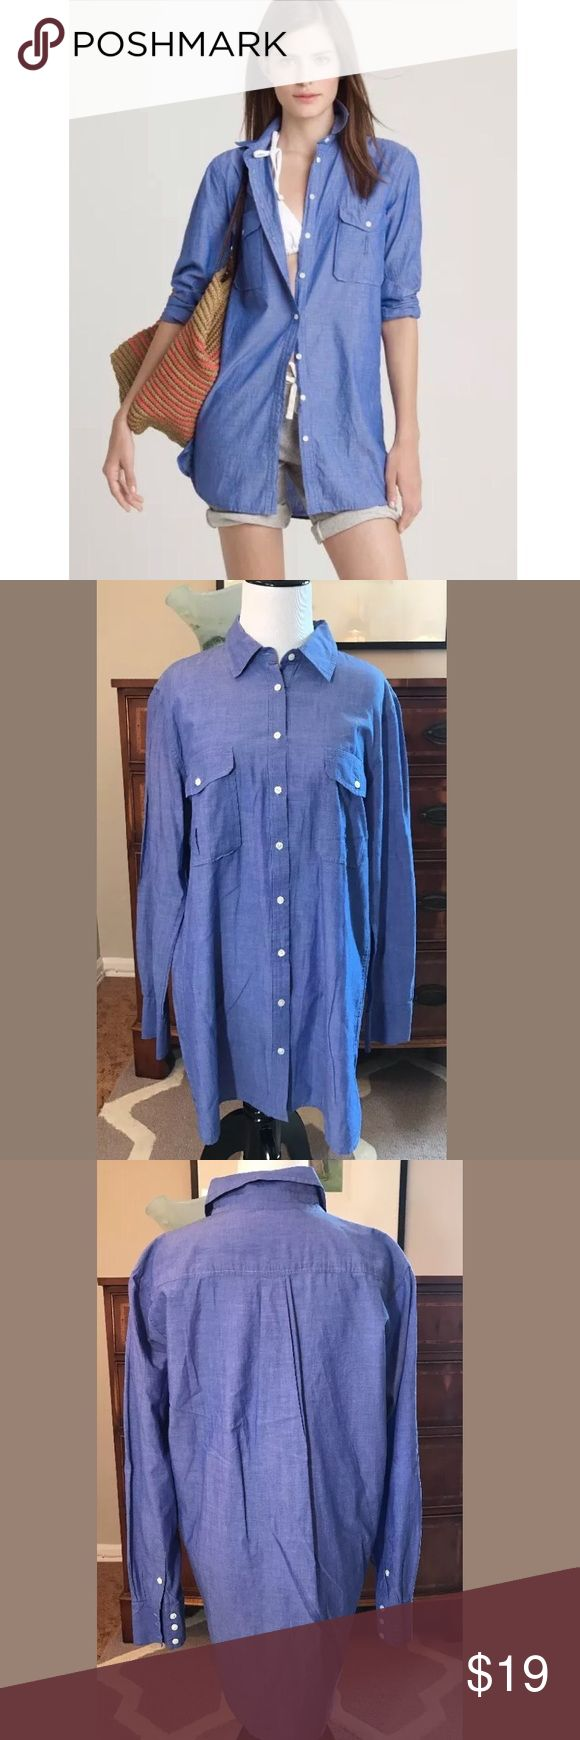 """J Crew Tomboy Tunic Button Down Shirt J Crew women's 'tomboy tunic.' Oversized Blue button-down shirt. 100% cotton. Ideal to wear as a swim cover-up or with leggings. Women's size Medium. 31"""" length 💕 J. Crew Swim Coverups"""